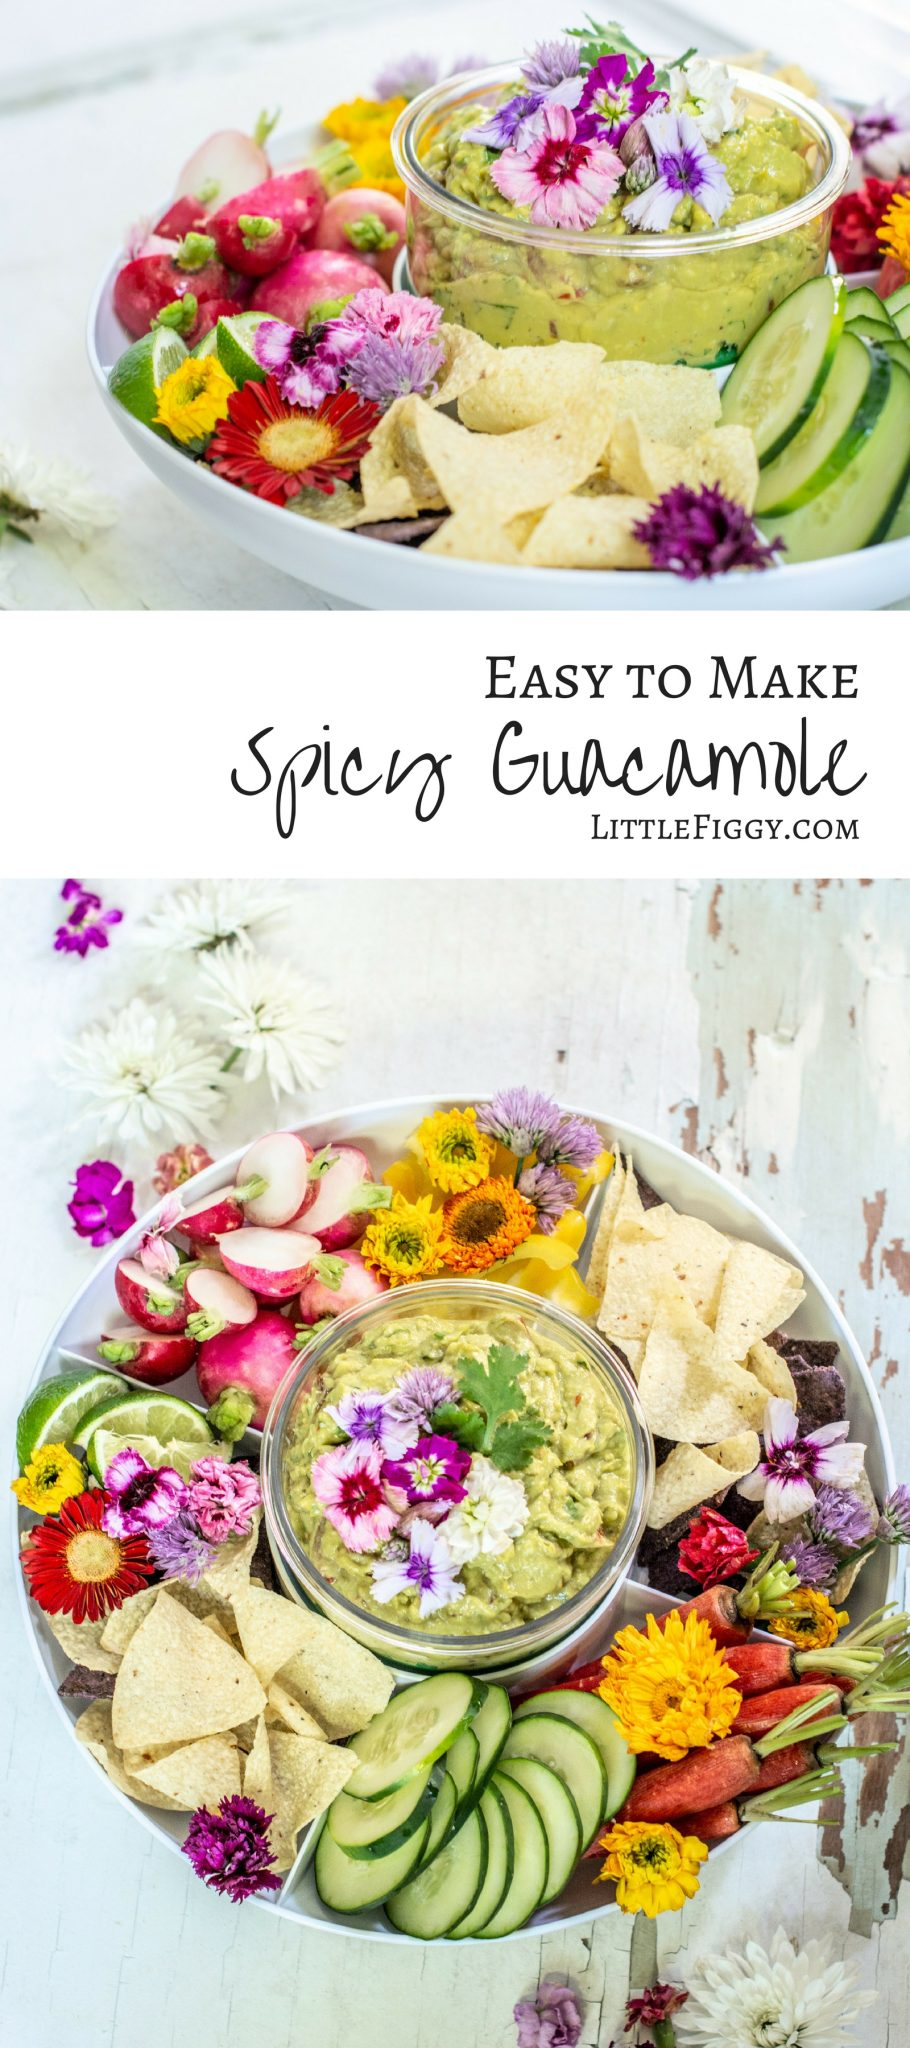 Easy to make and as spicy as you like, try this fresh-made spicy guacamole recipe! Get the recipe at Little Figgy Food and learn how I keep my guacamole fresh! #ad #guaclock #casabella @casabellapin